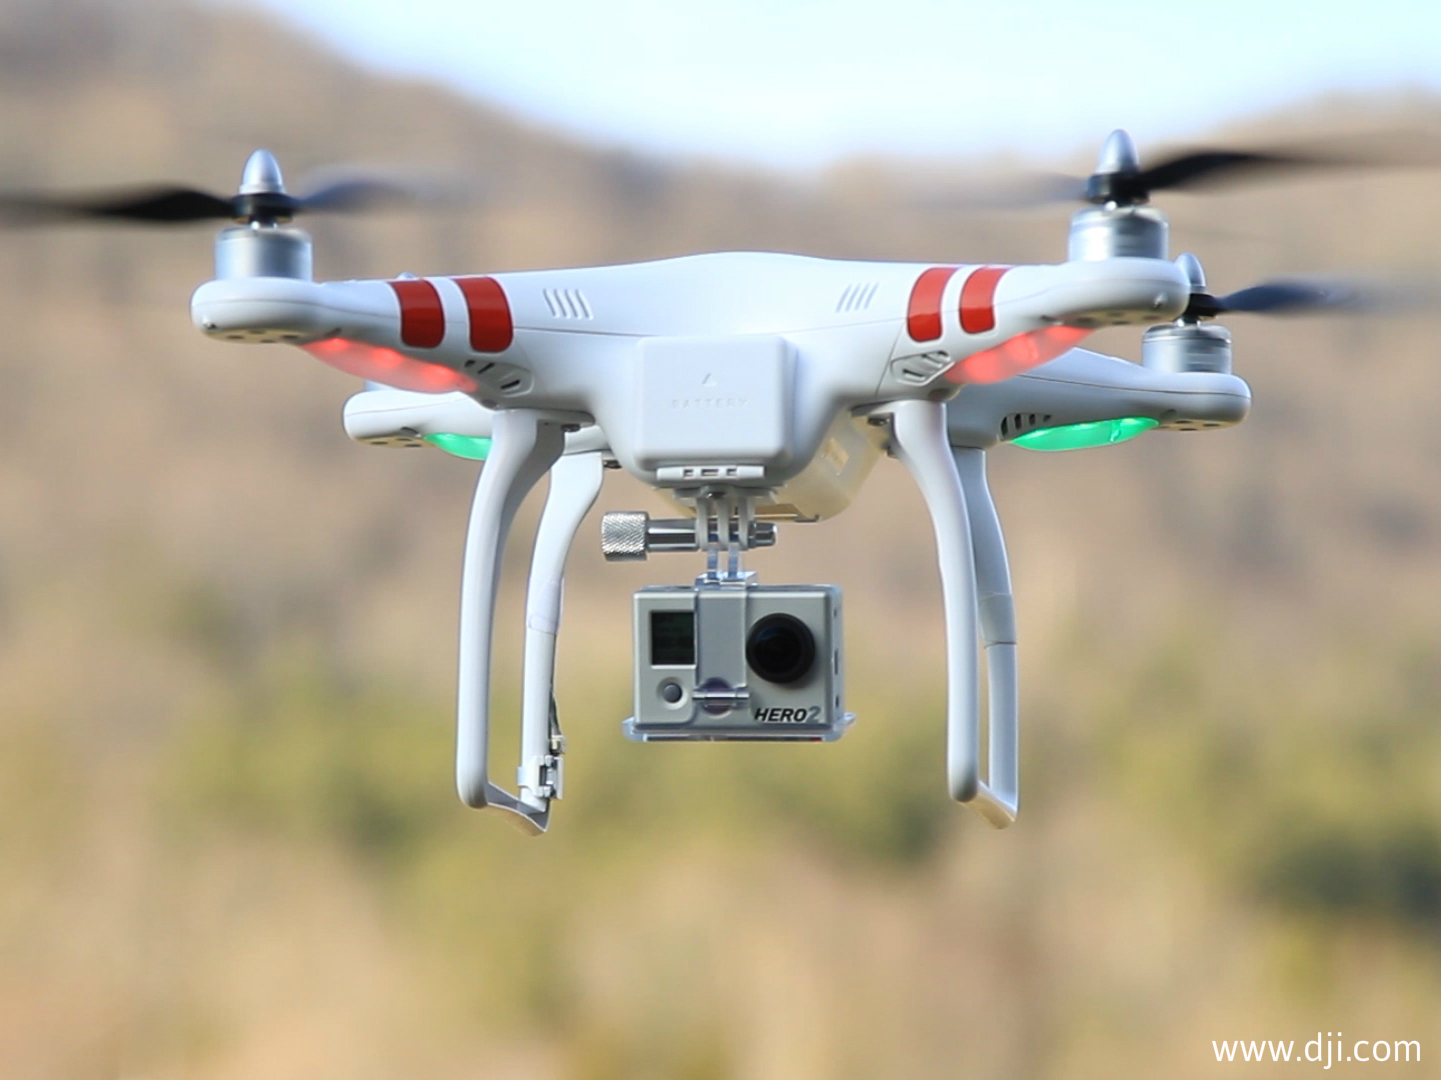 Terrorism Have Been Cited By The Civil Aviation Authority Of Philippines CAAP For Regulation Unmanned Aerial Vehicles UAVs Or Drones